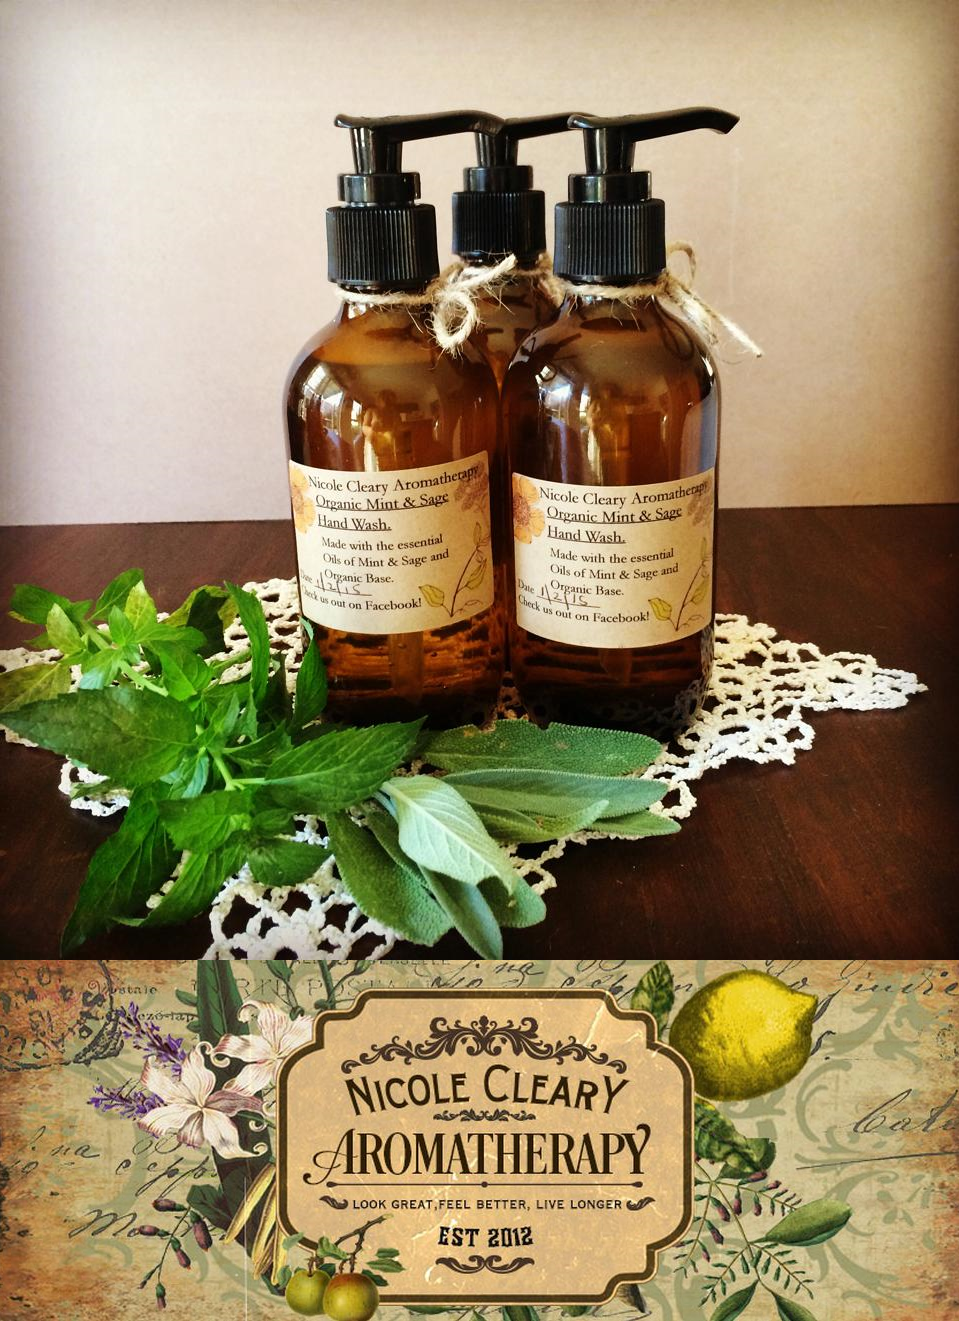 Nicole Cleary Aromatherapy is the most sought-after natural health and wellness clinic, offering naturally made lip balms of different types. From mint & sage lip balm pot to rose & bergamot lip balm to mint & sage lip balm, we offer delicately made lip balms that have an exclusive base. Our therapeutic aromatherapy wellness clinic is reckoned the best in the entire region.